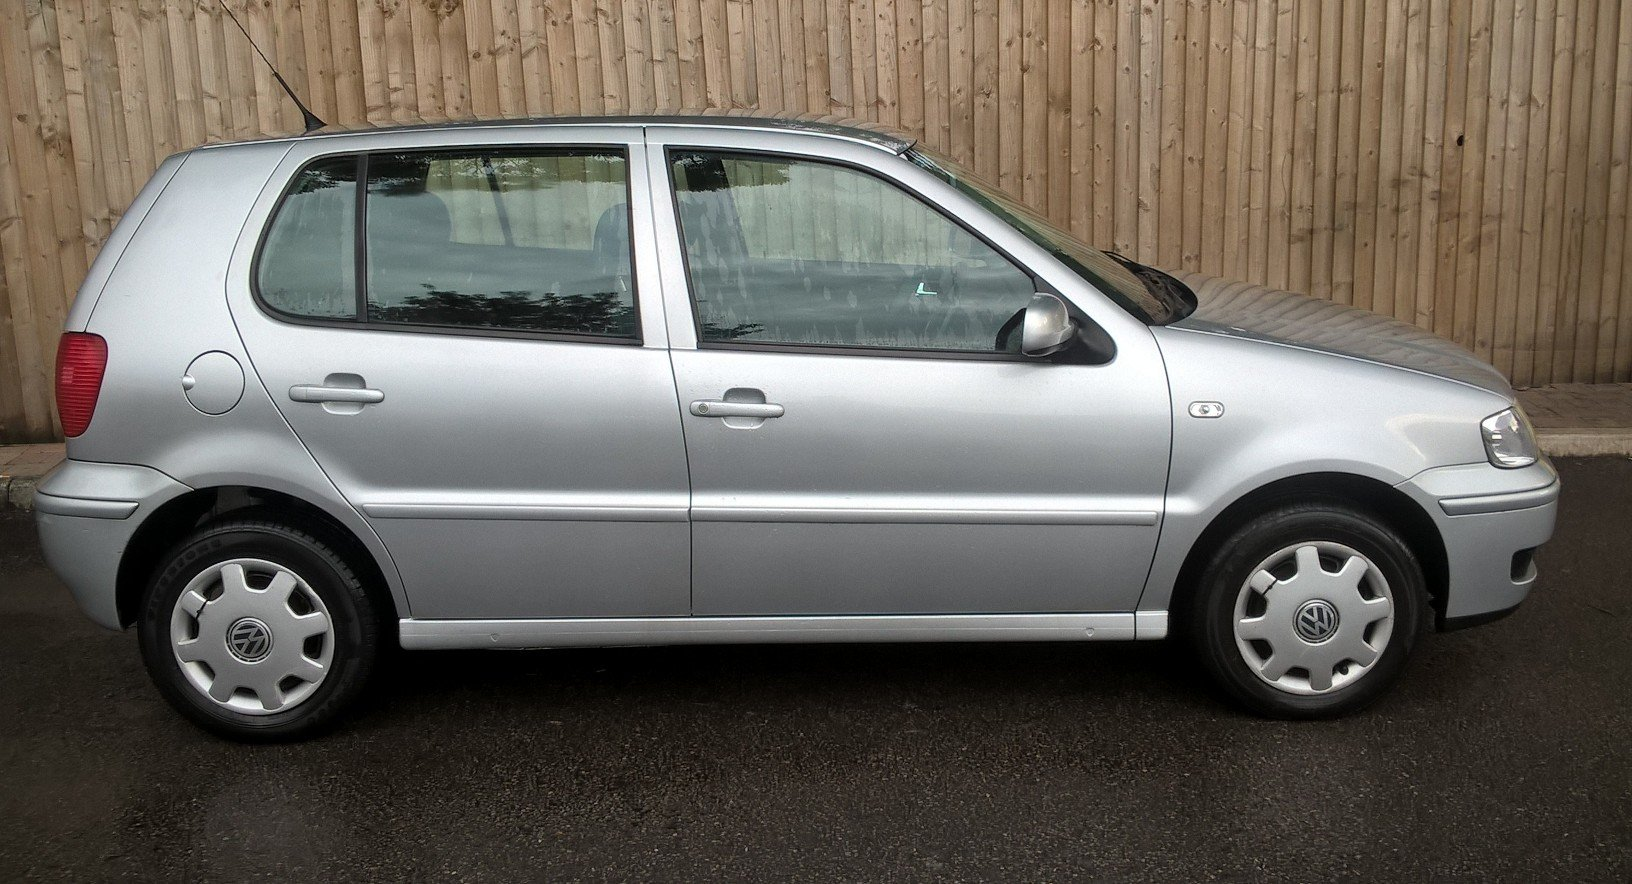 2001 VW Polo 1.4 'Match', 24K miles, 31.5.2020 MOT For Sale (picture 2 of 6)